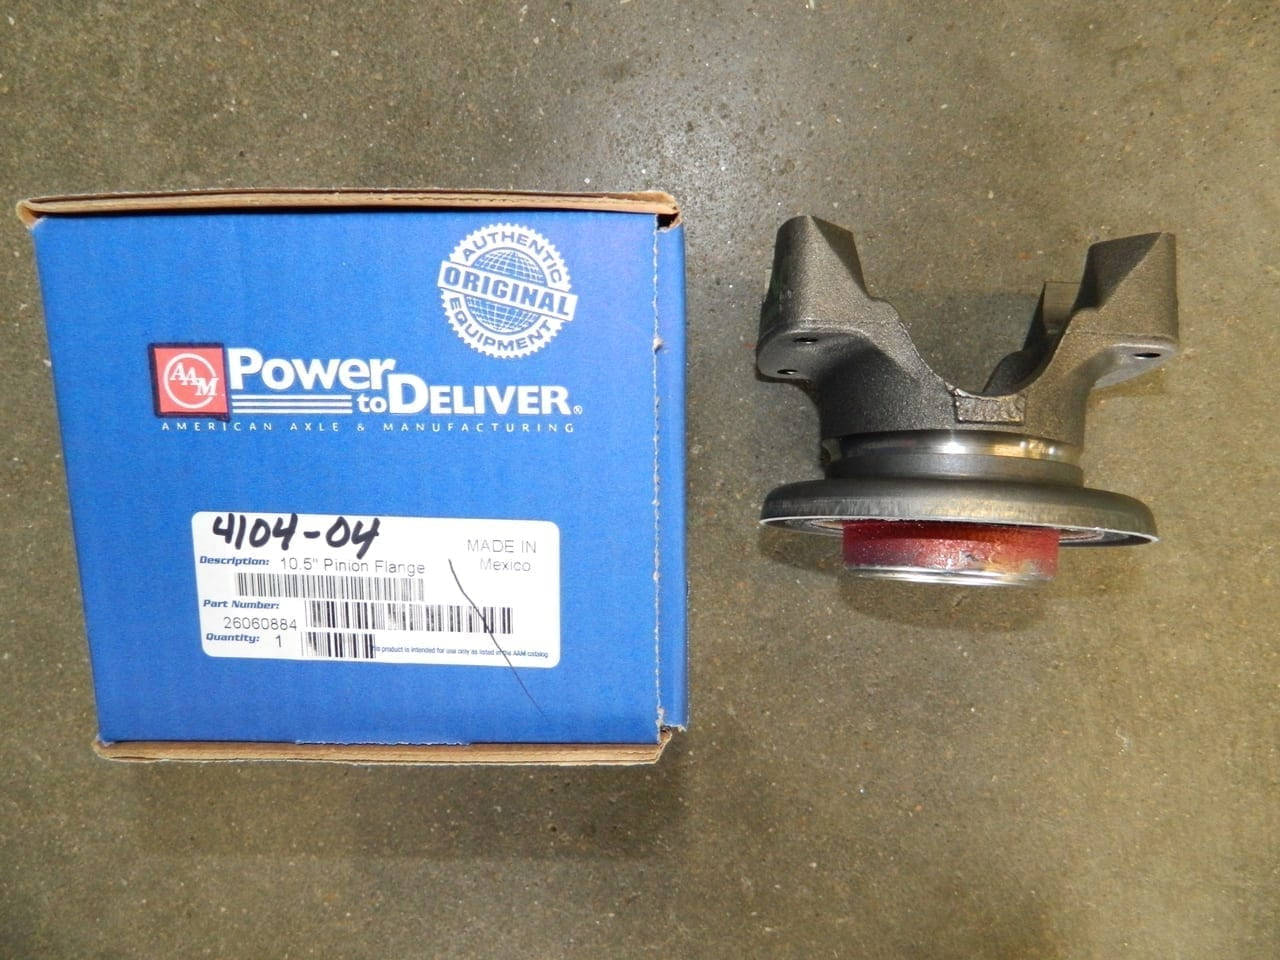 Gm 14 Bolt 10.5/11.5 Rear End Pinion Yoke Differential Full Float 1410 1415 Series U-Joint